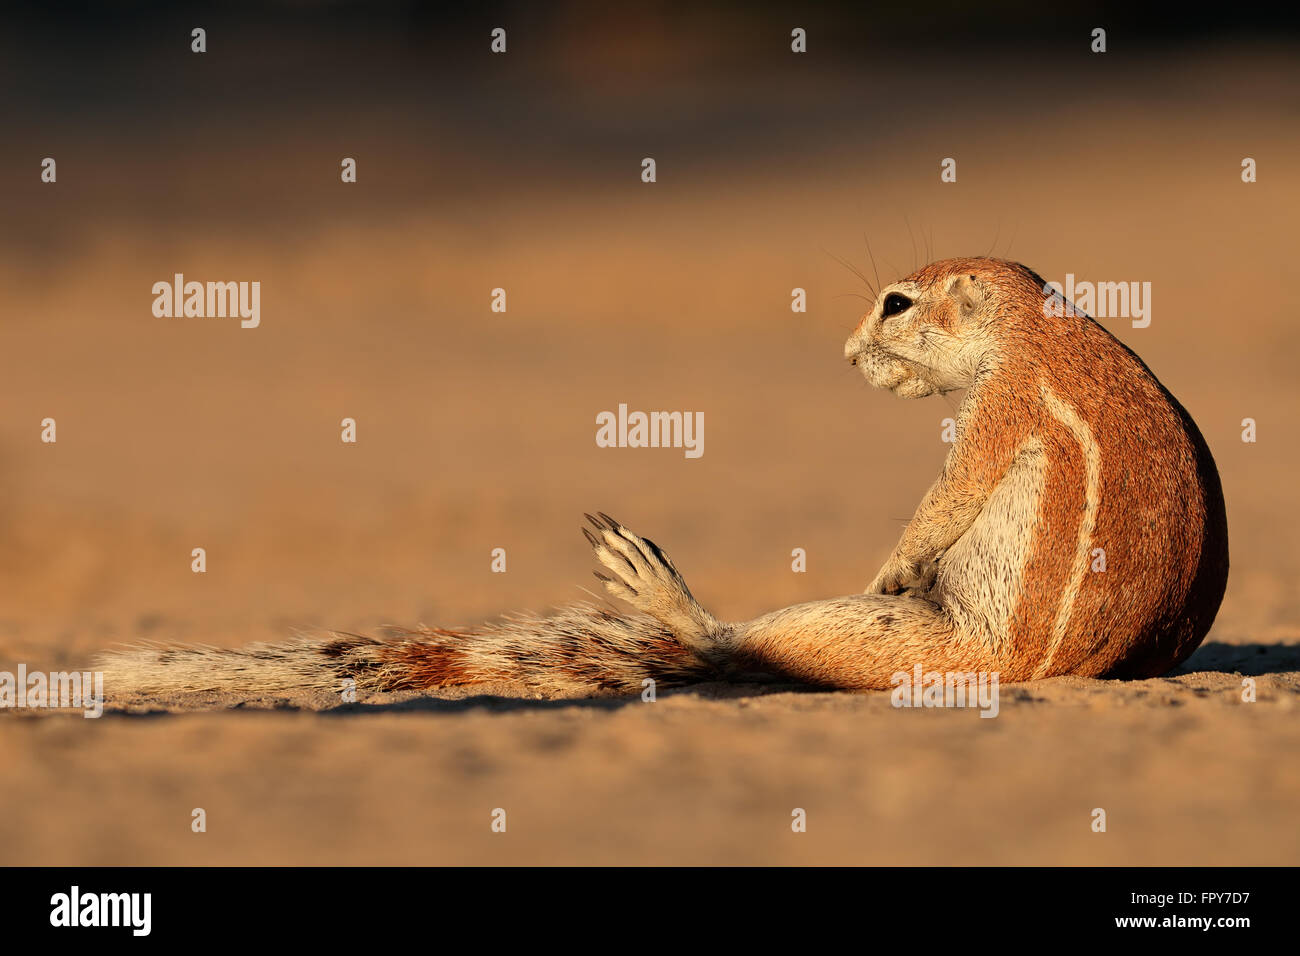 Ground squirrel (Xerus inaurus), Kalahari desert, South Africa - Stock Image